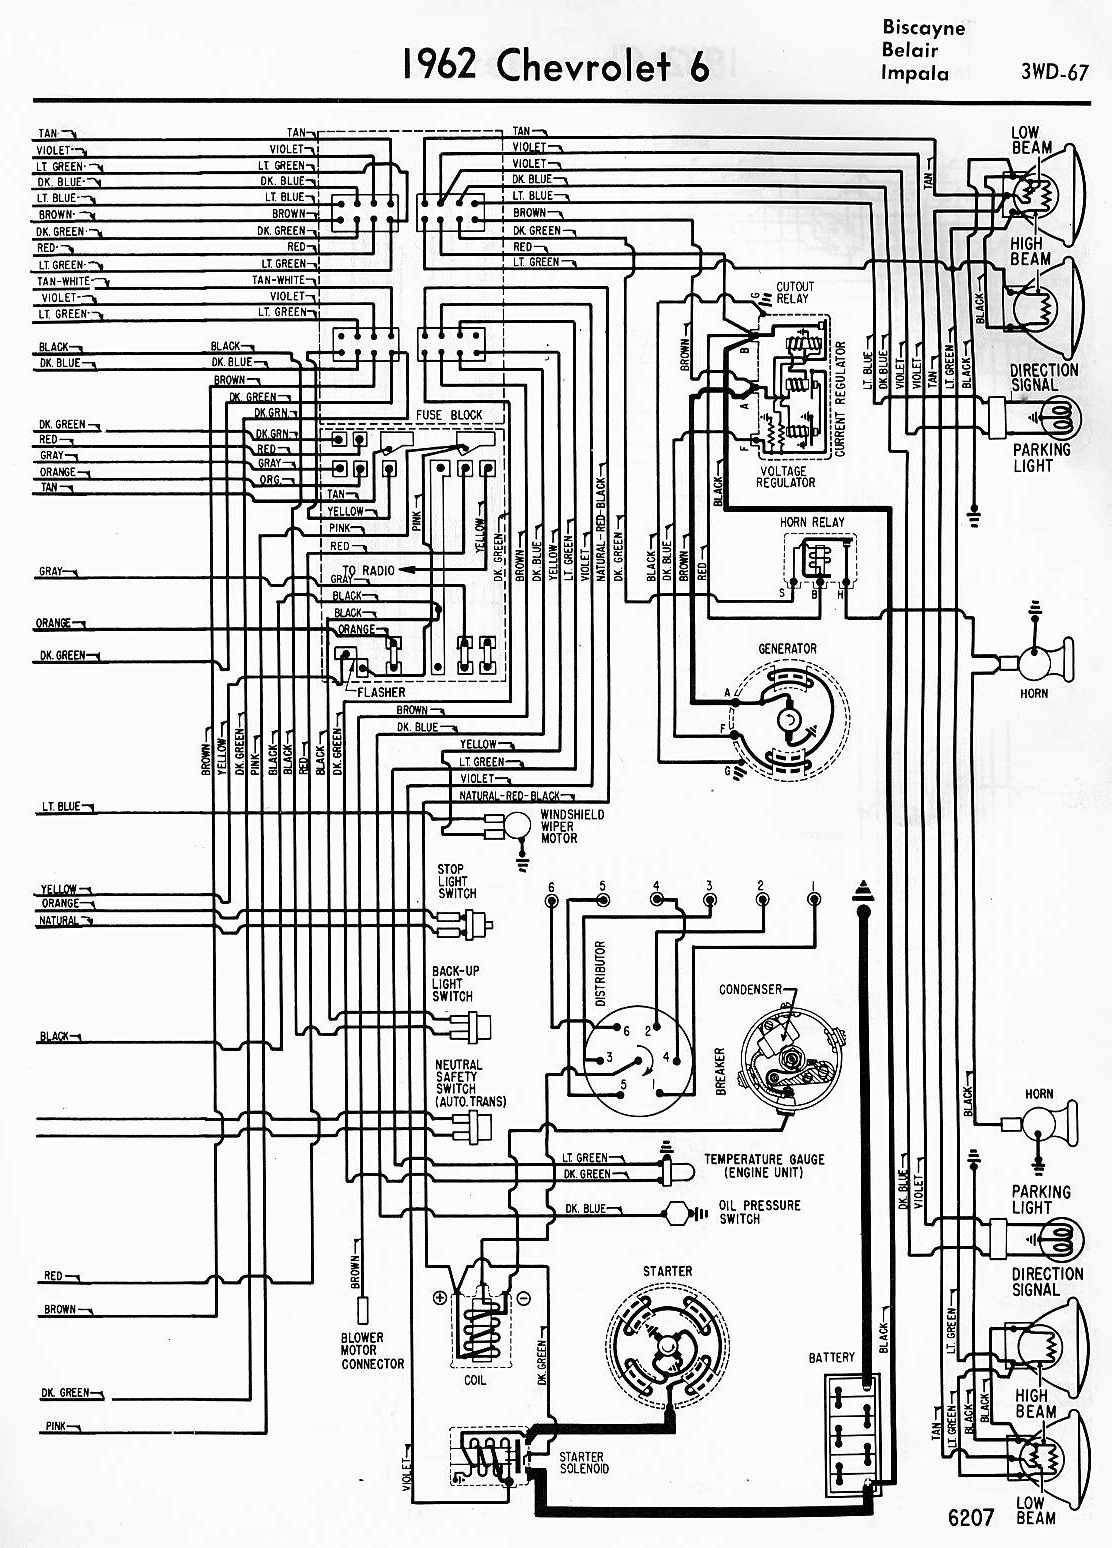 Tremendous Circuit Diagram As Well Corvette Wiper Motor Wiring Diagram On Wiring Cloud Itislusmarecoveryedborg